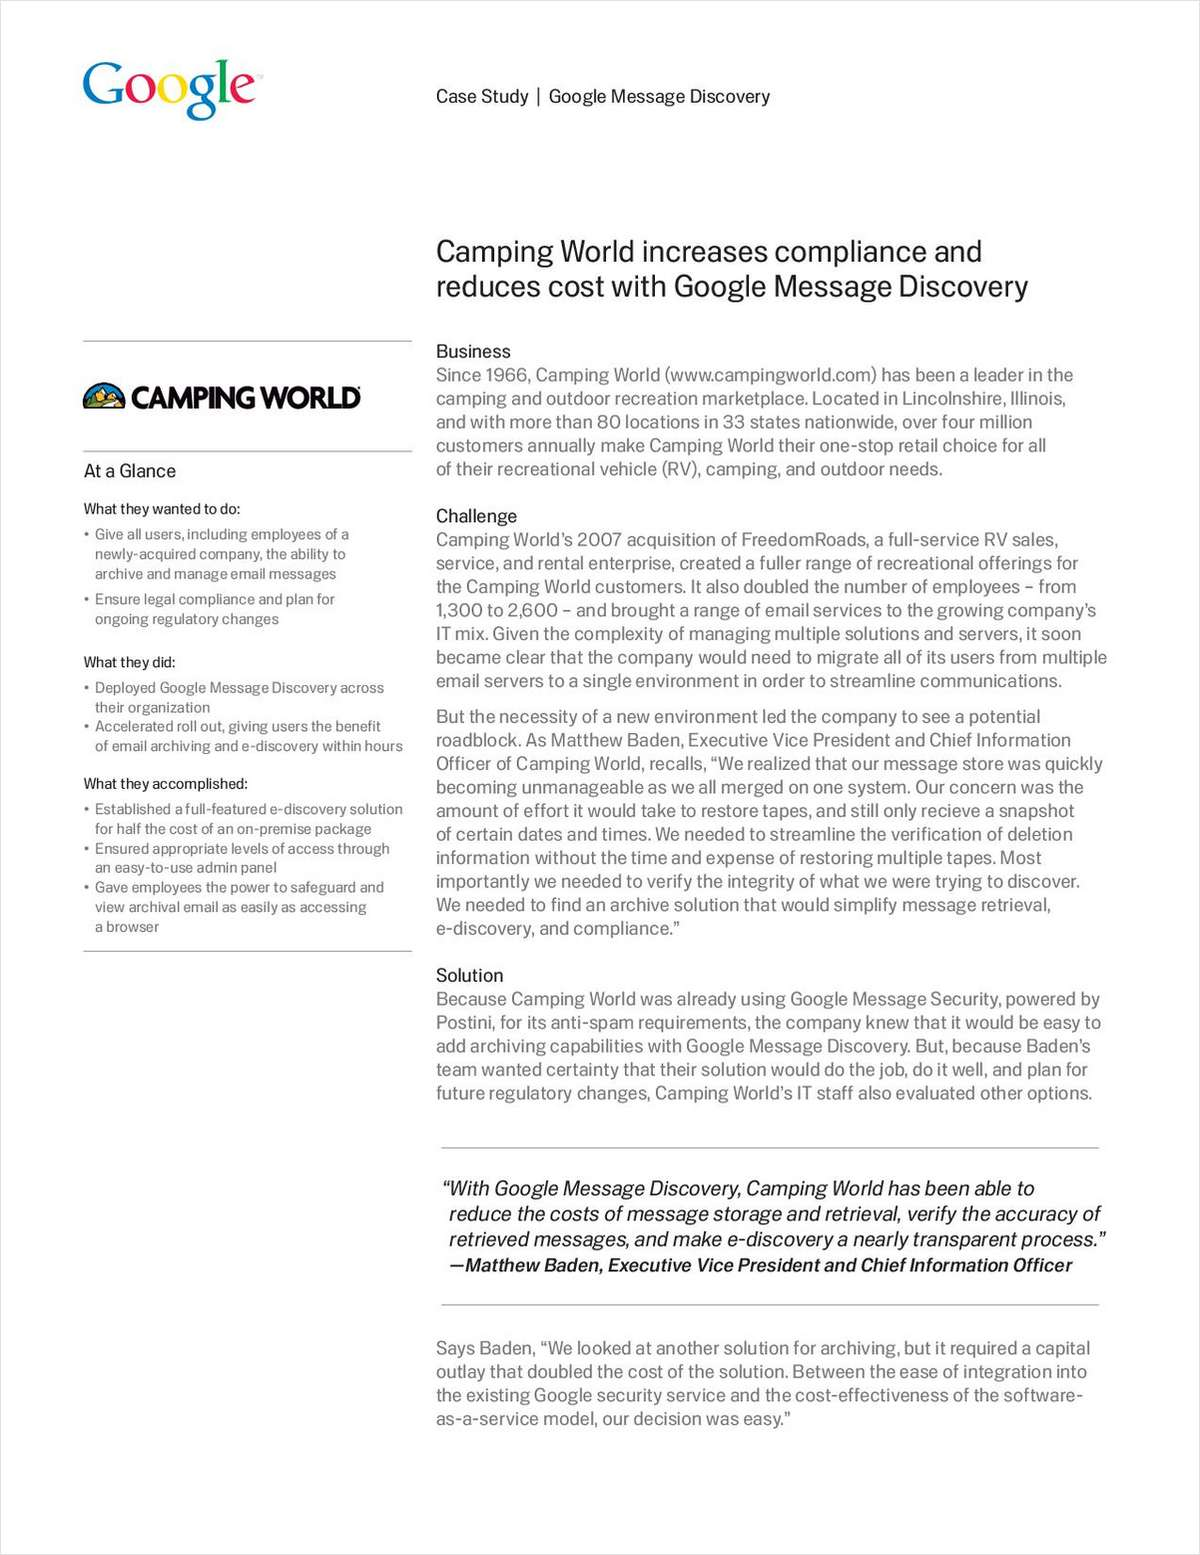 Camping World Increases Compliance and Reduces Cost with Google Message Discovery